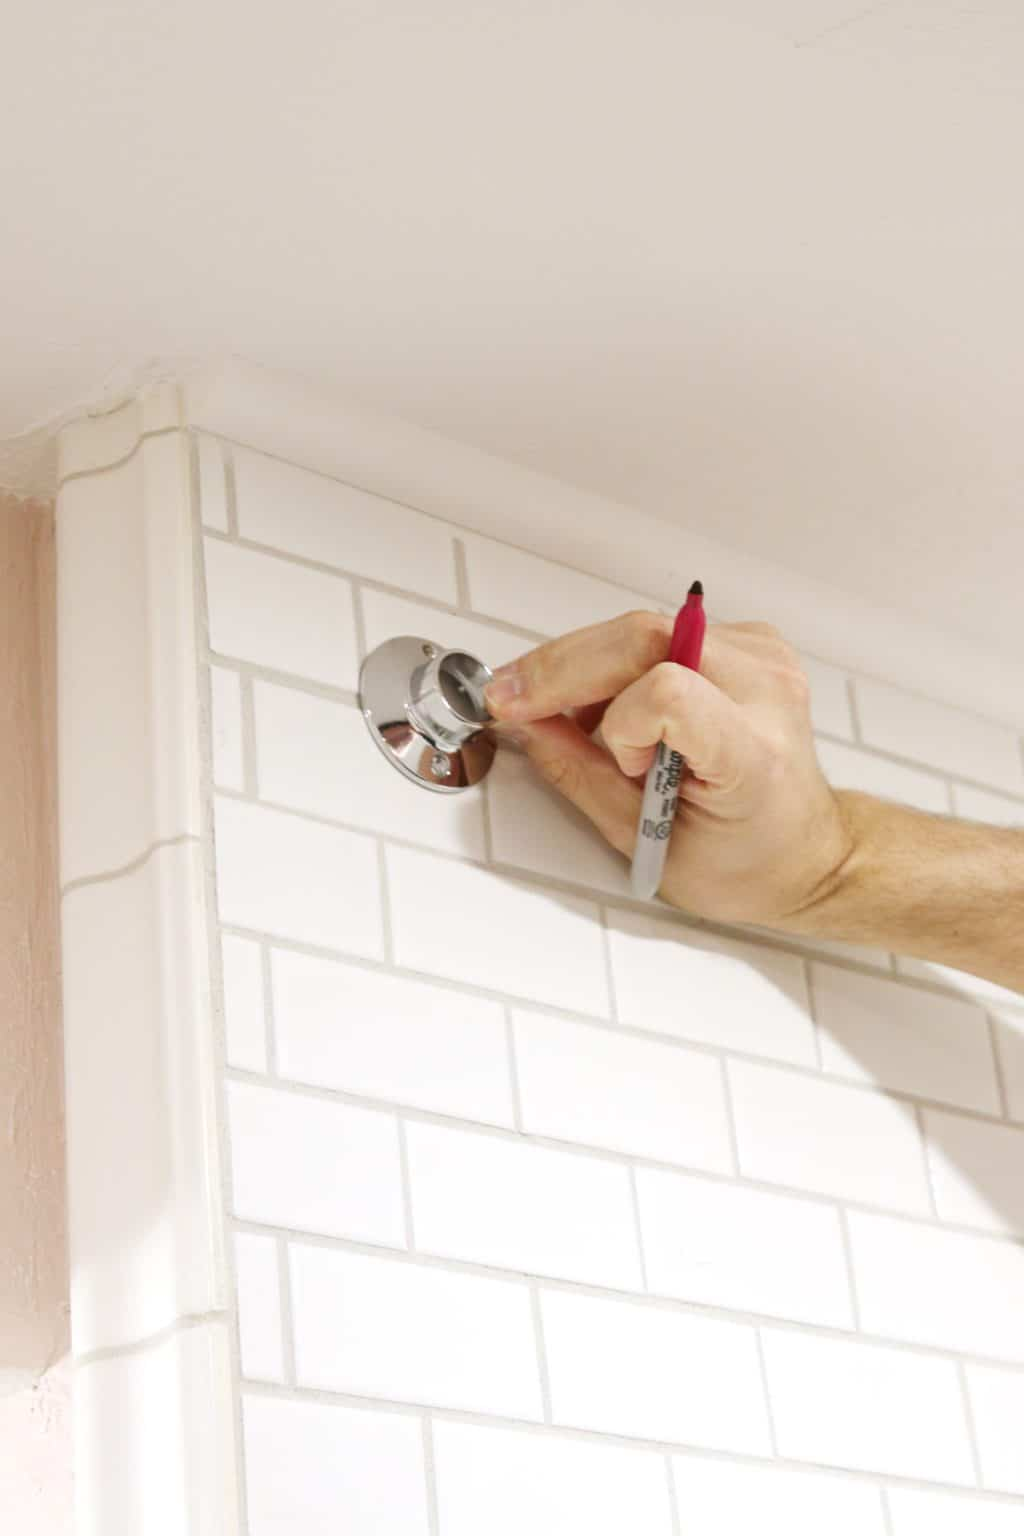 how to drill into tile to hang a shower